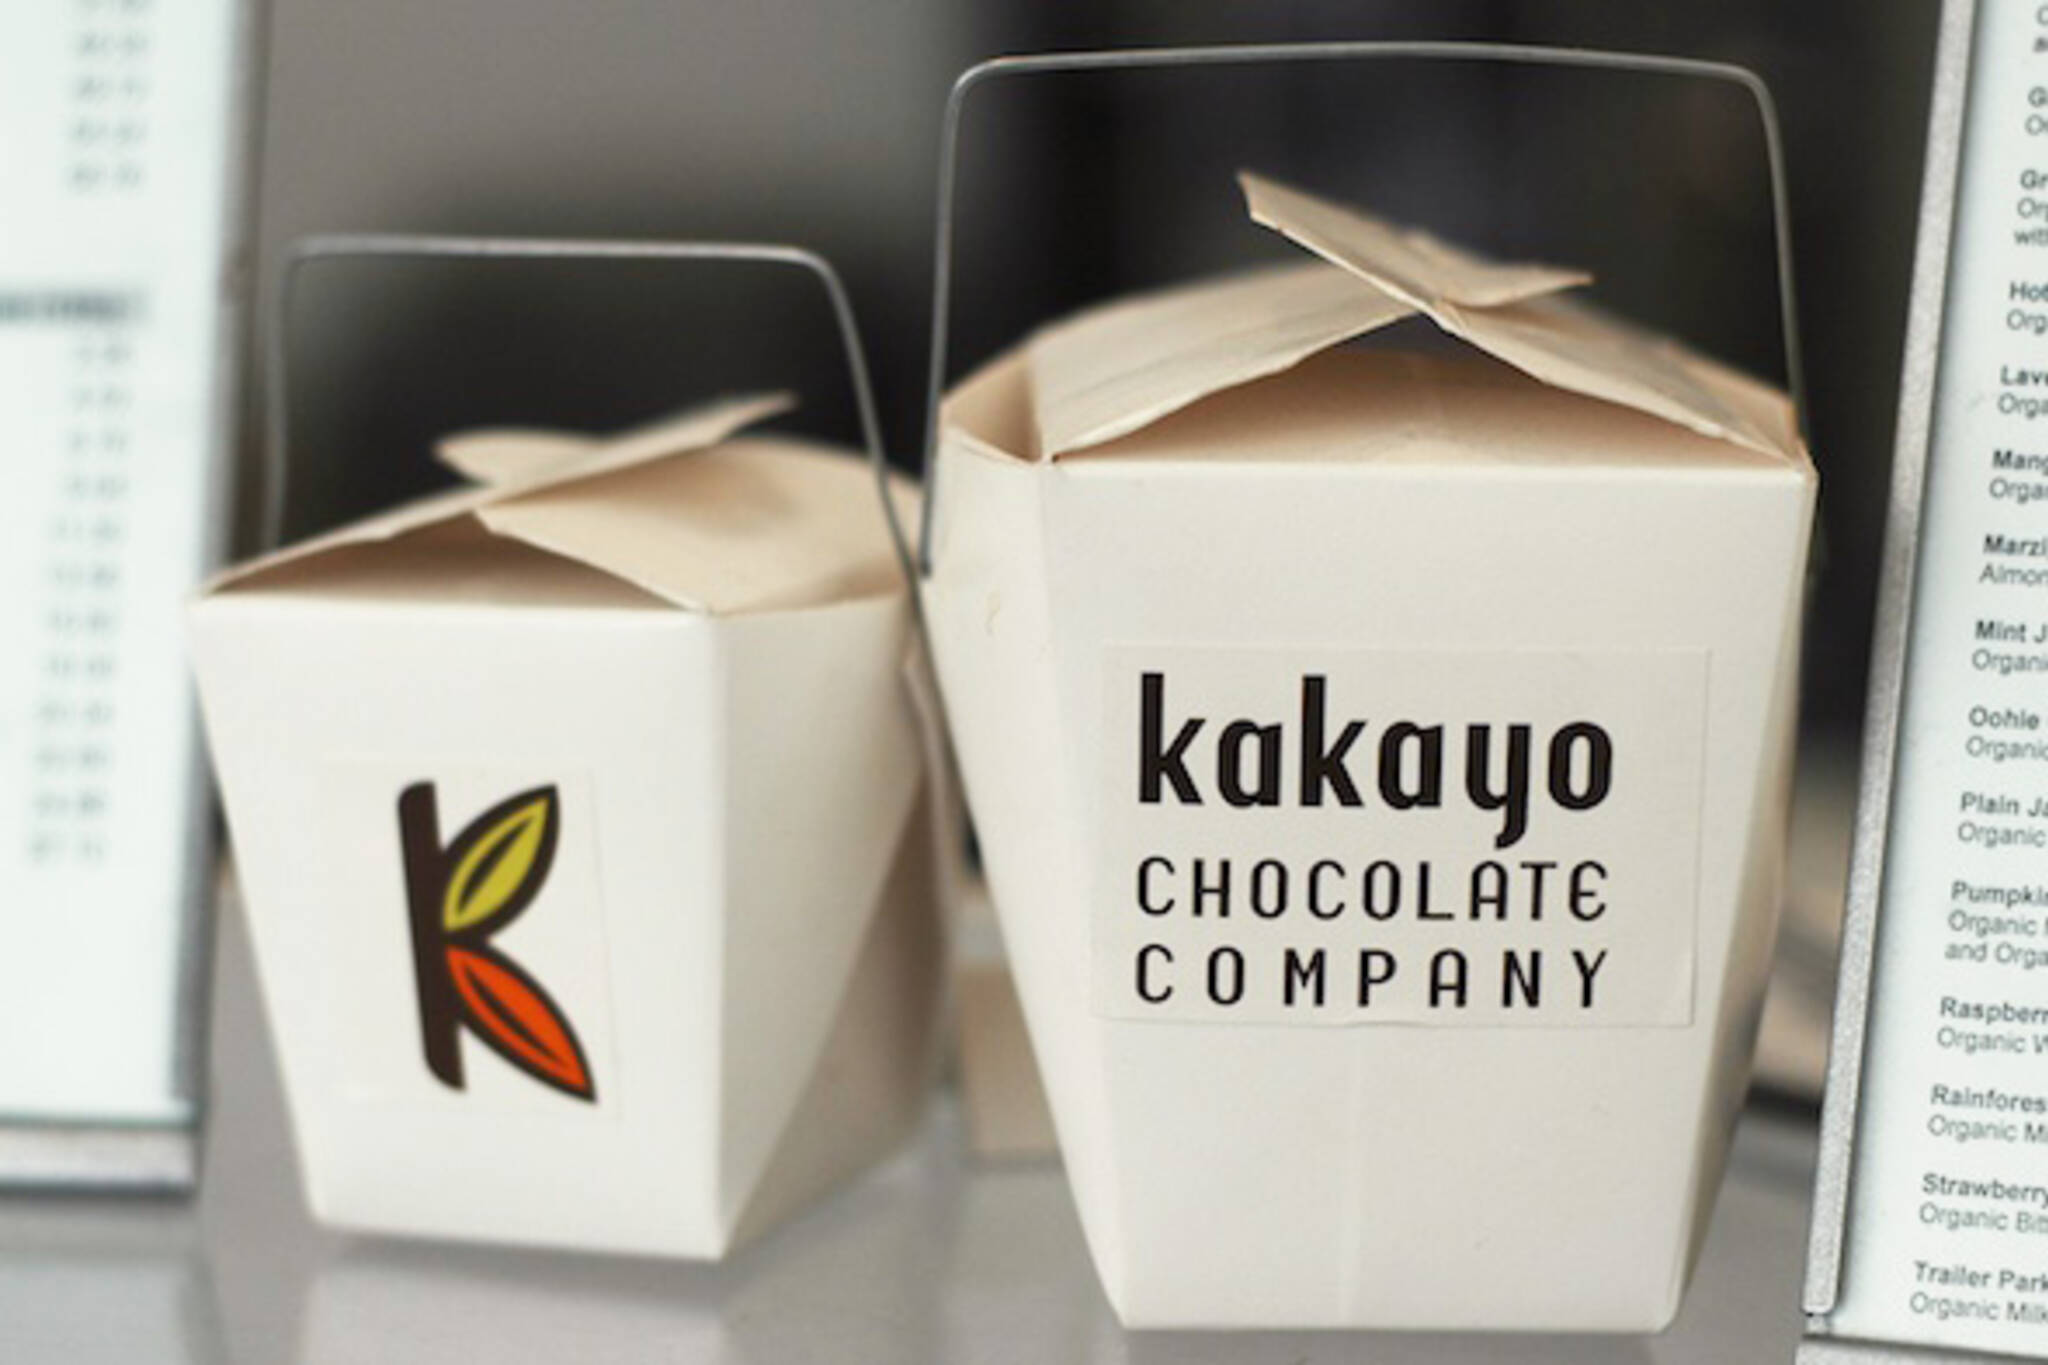 Kakayo Chocolate